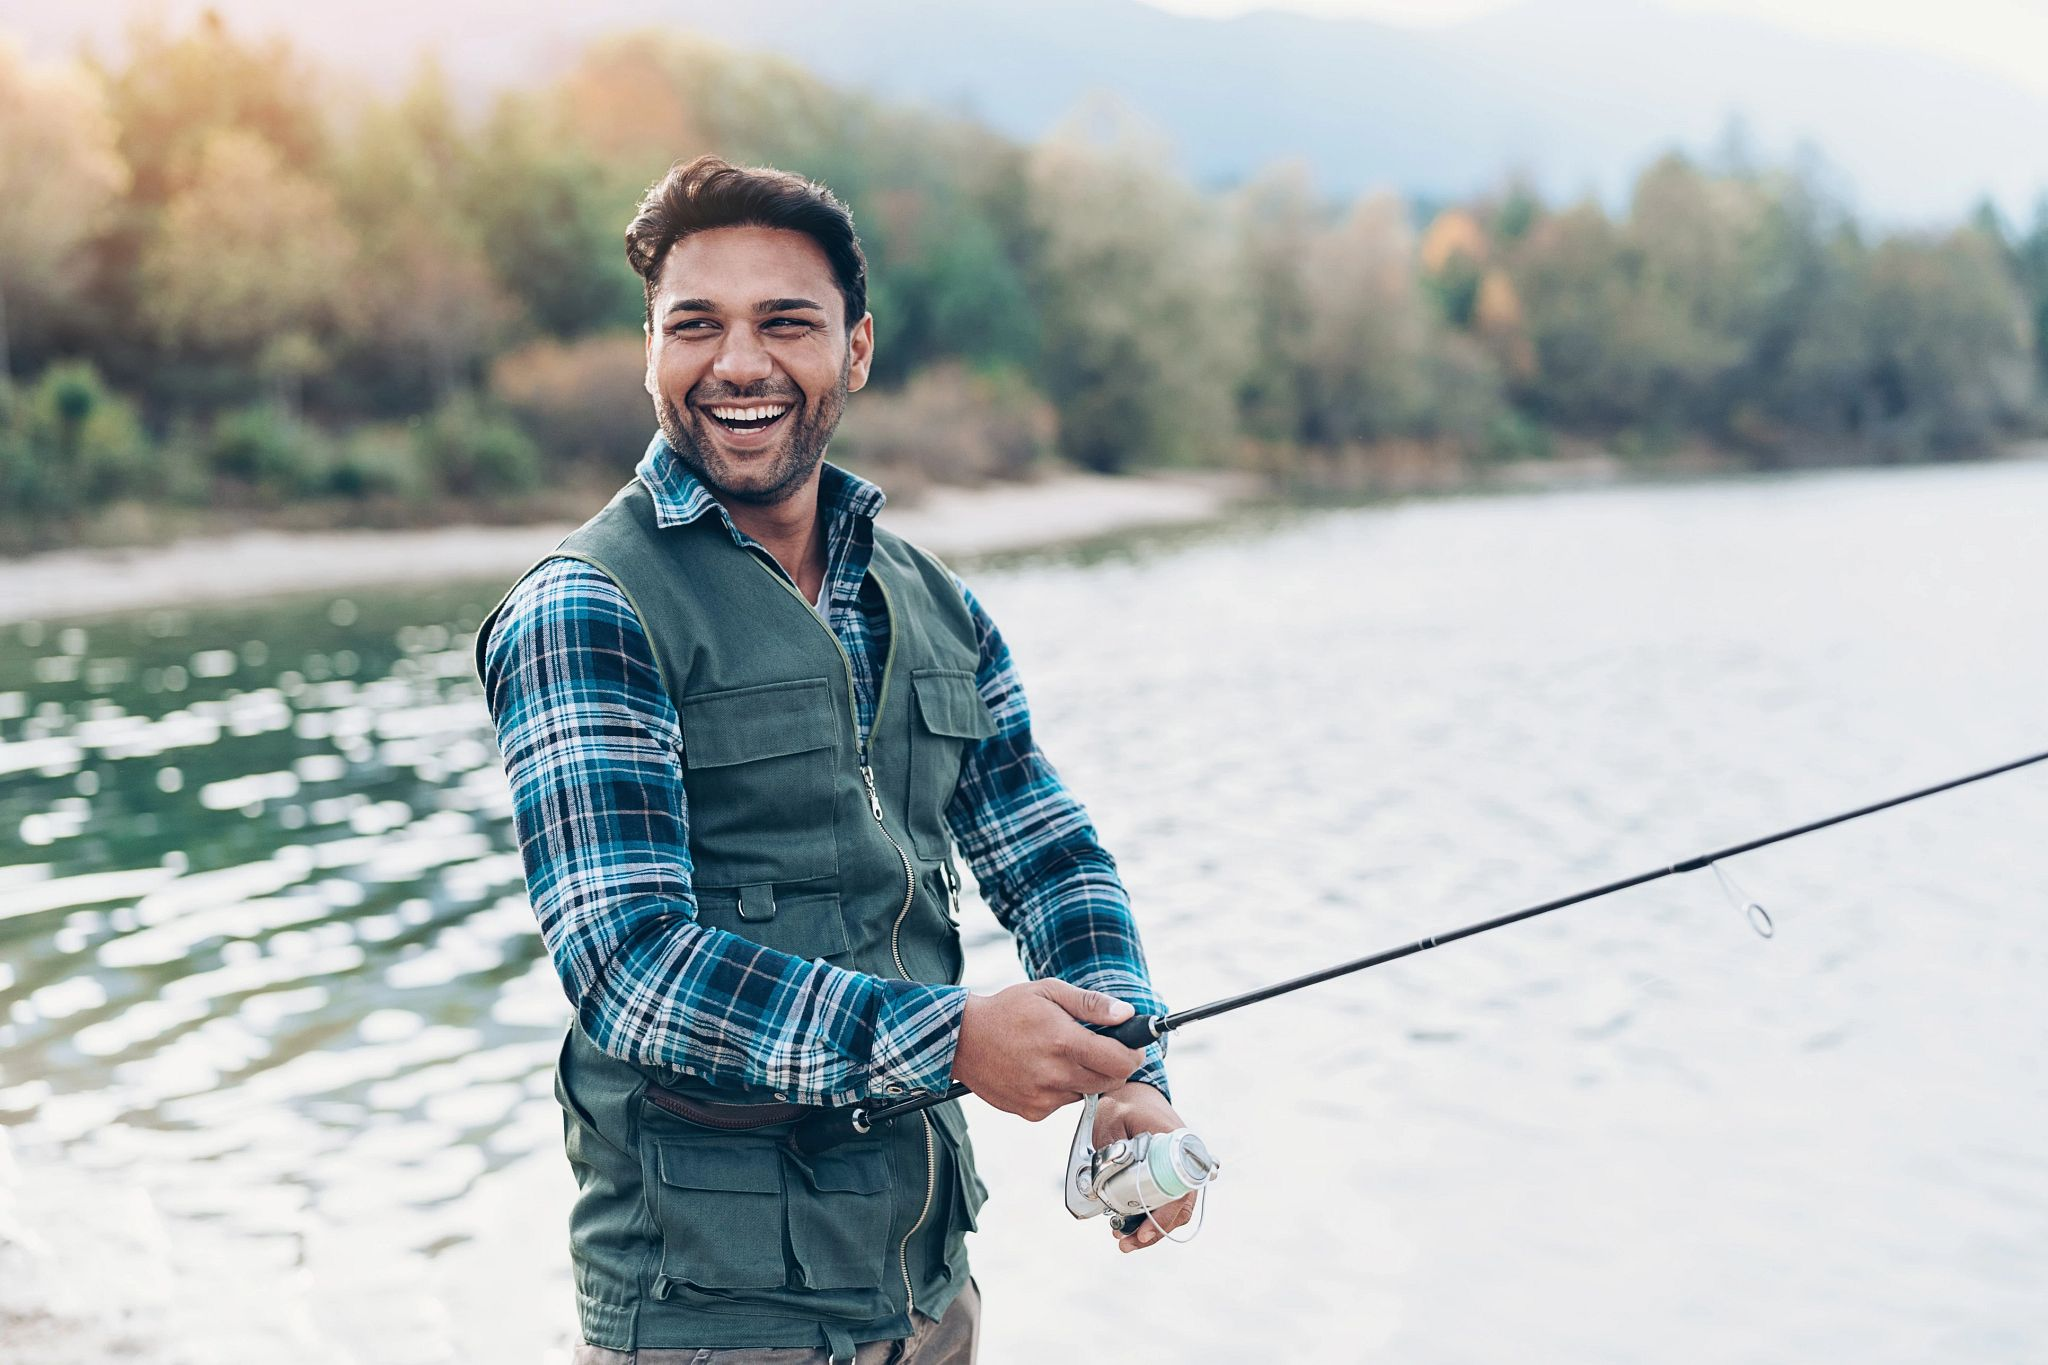 An image of a fisherman smiling while casting his reel.